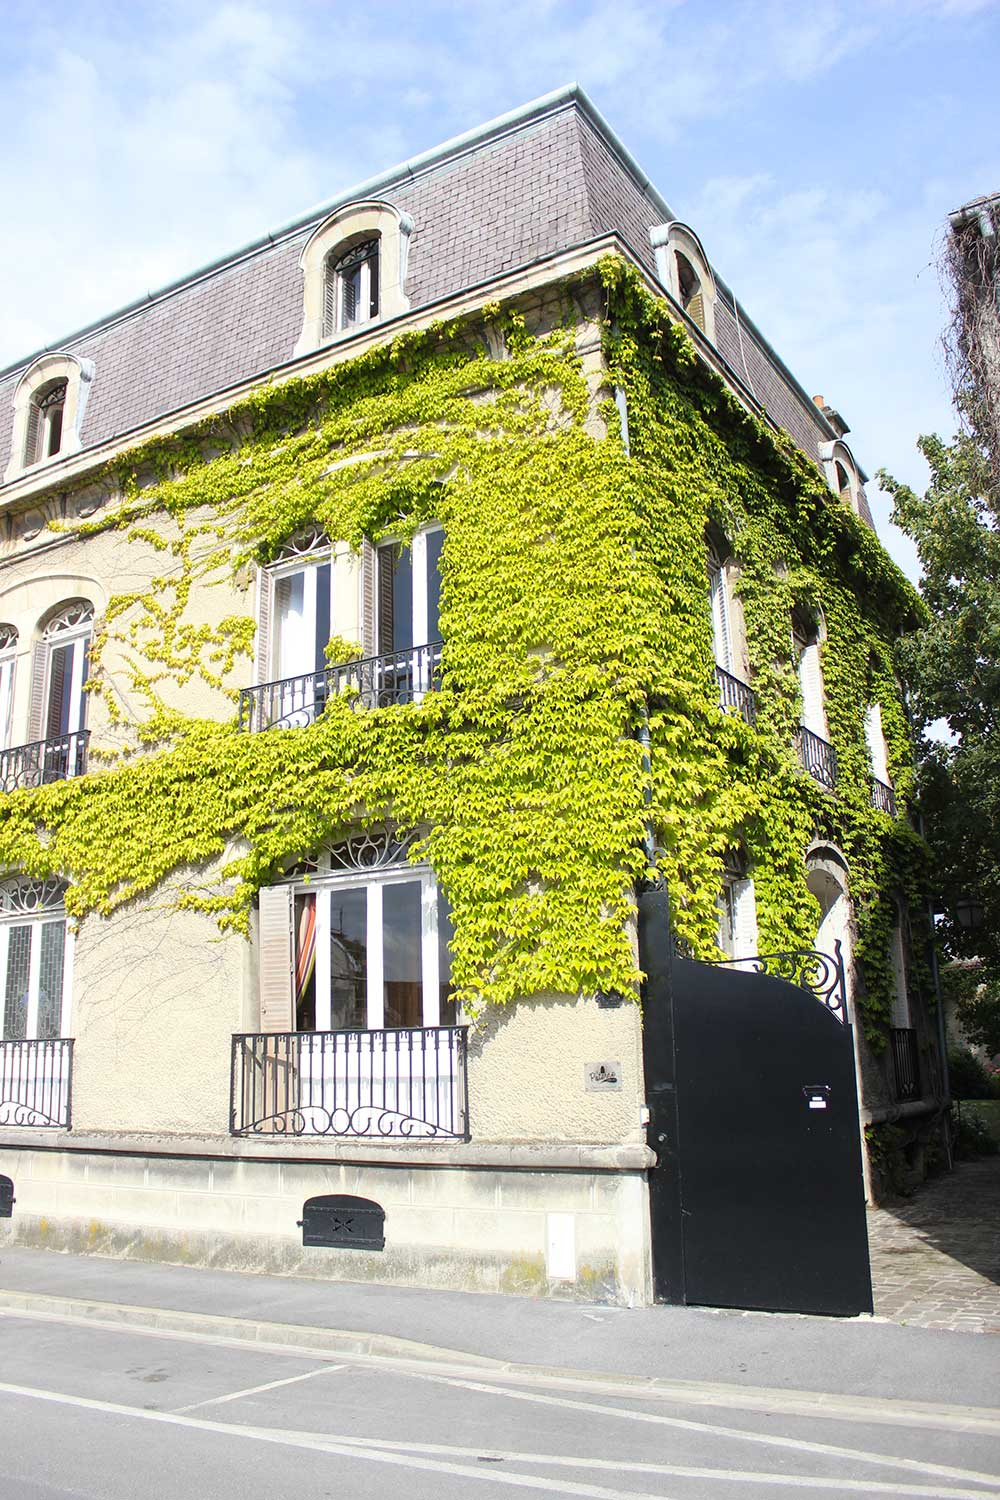 La poterne epernay office du tourisme epernay pays de for Chambre d hote epernay